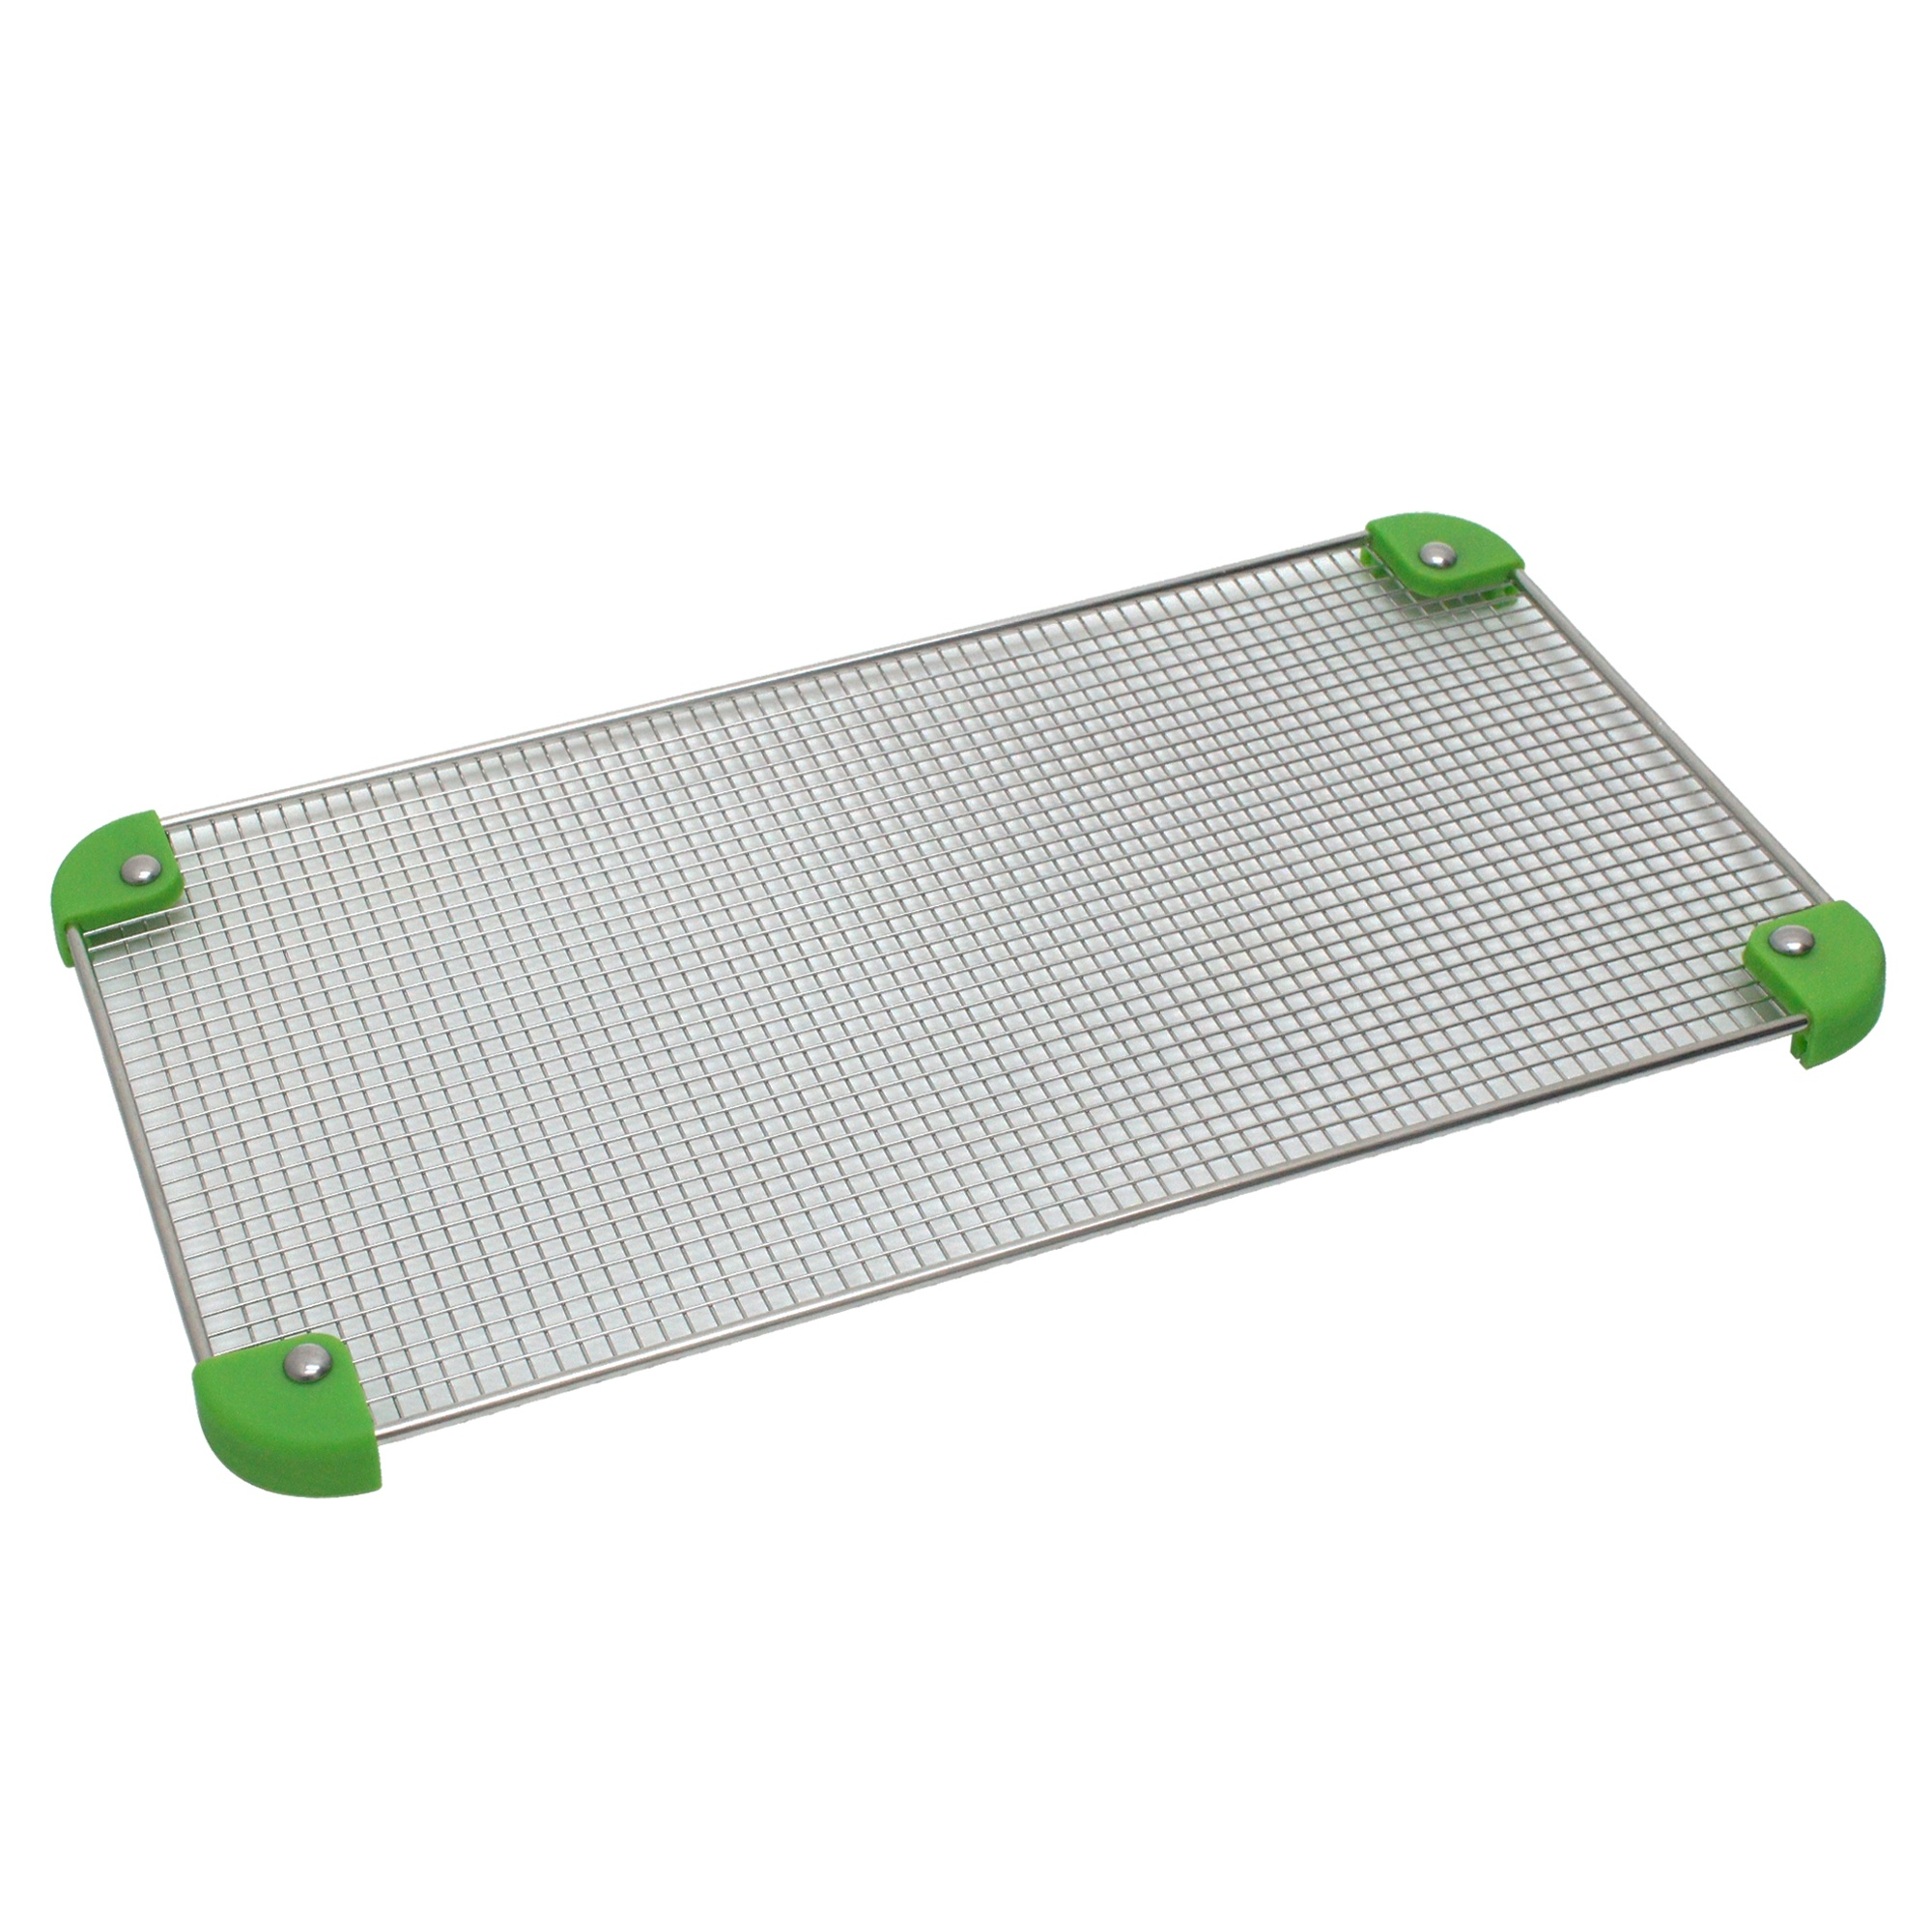 Perforated Plate Mesh Tray Lid Image